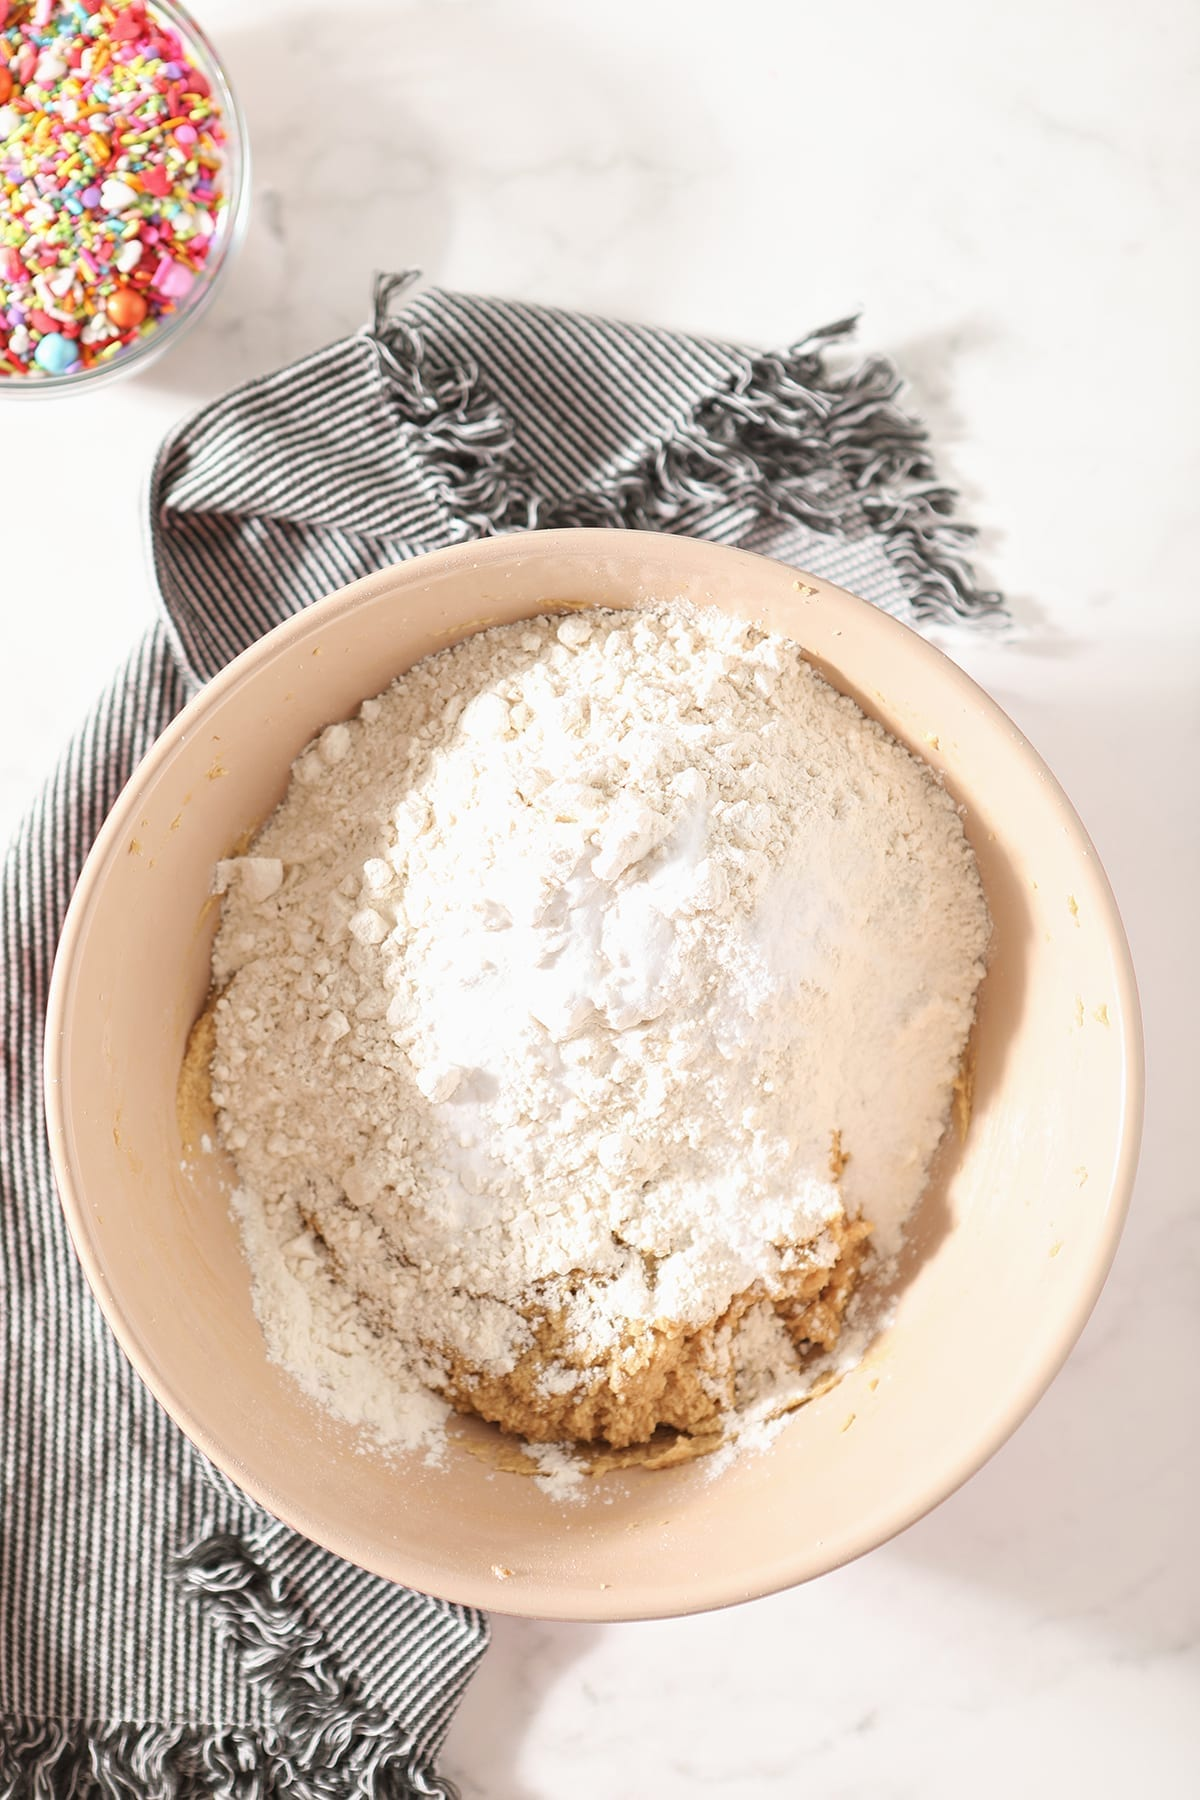 Flour is shown on top of other ingredients in a bowl